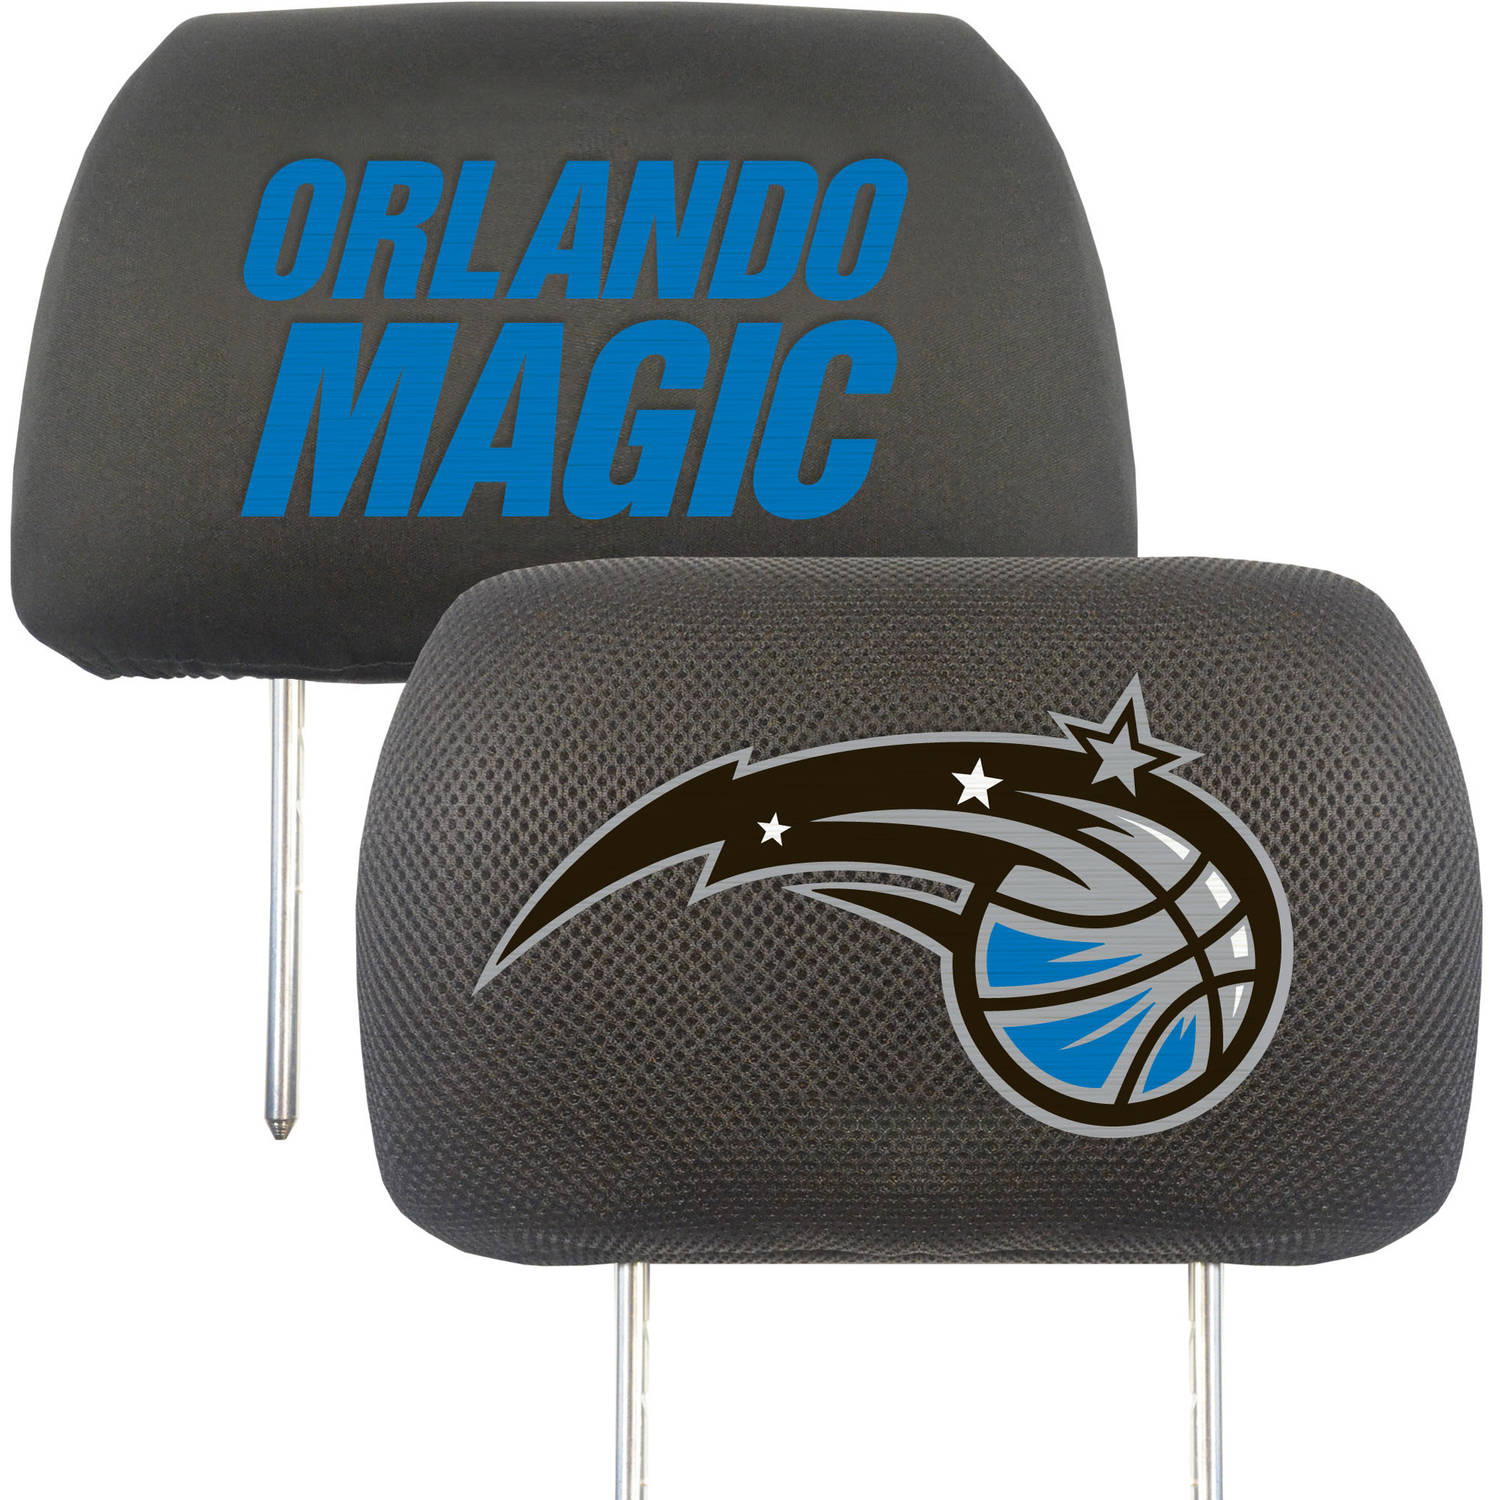 NBA Orlando Magic Headrest Covers